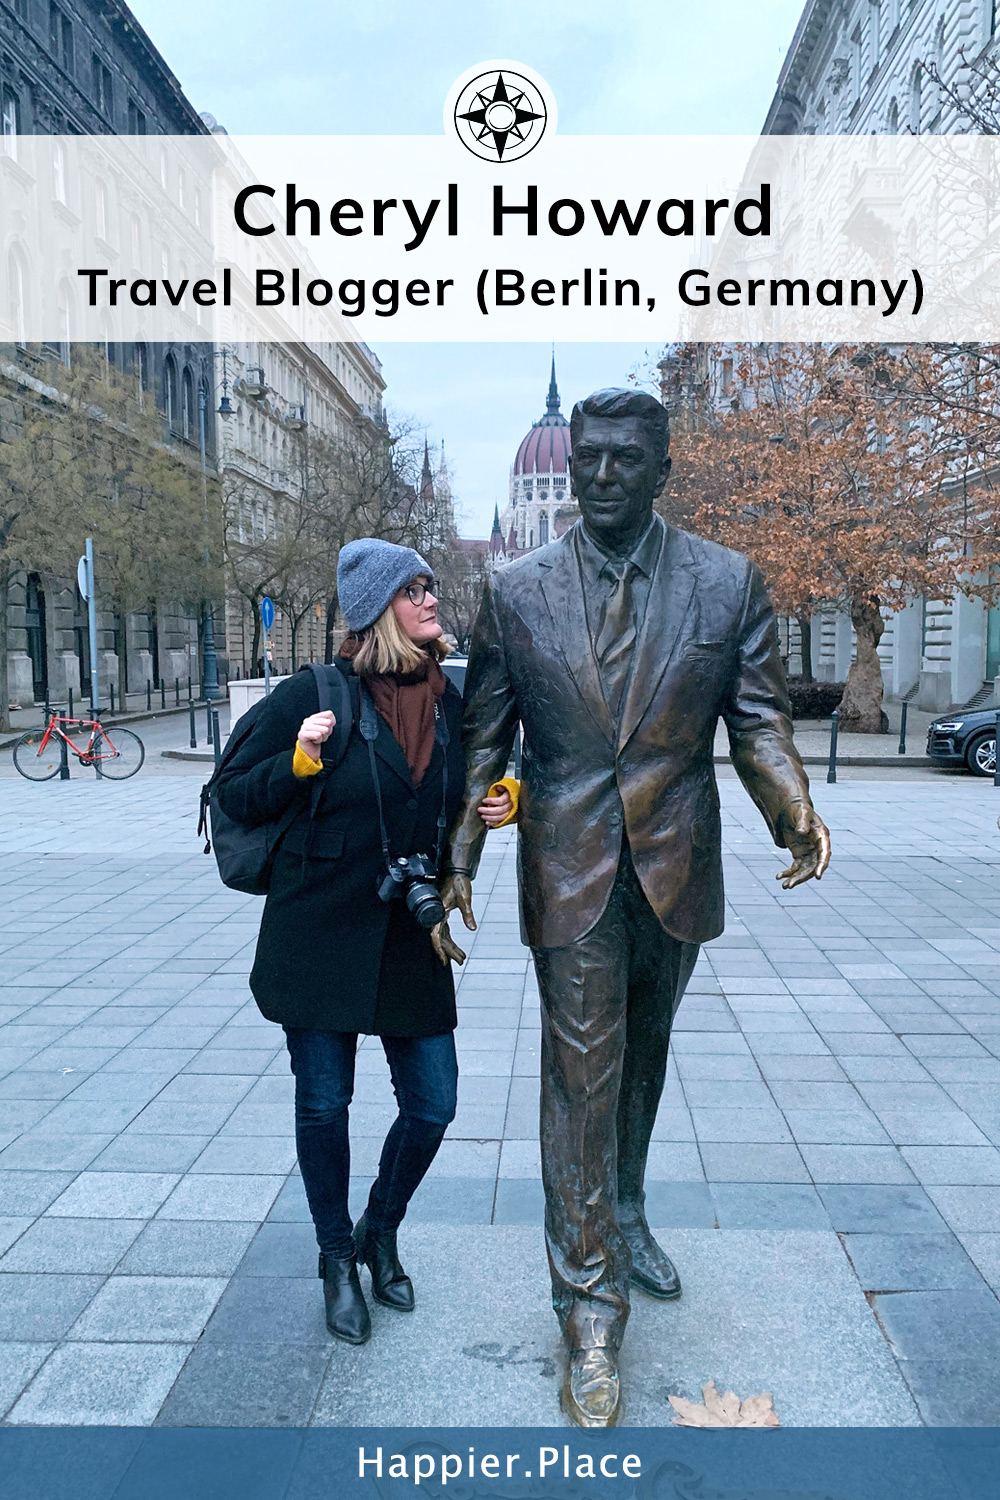 Cheryl Howard: Travel Blogger (Berlin, Germany)